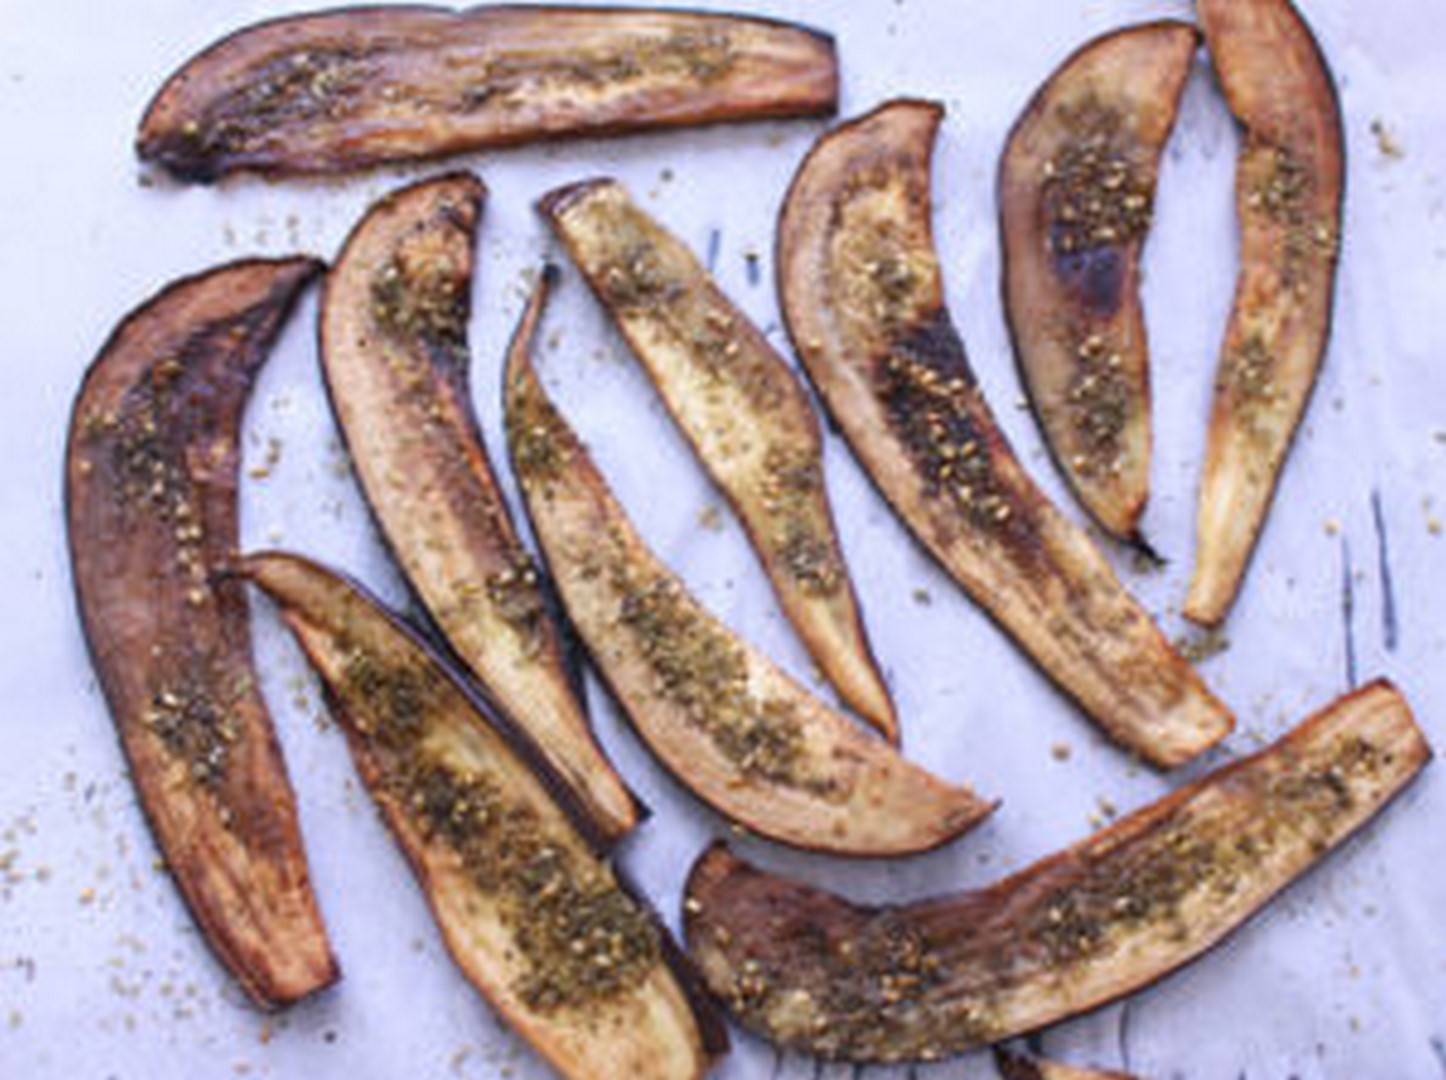 zaatar-spiced eggplant bacon